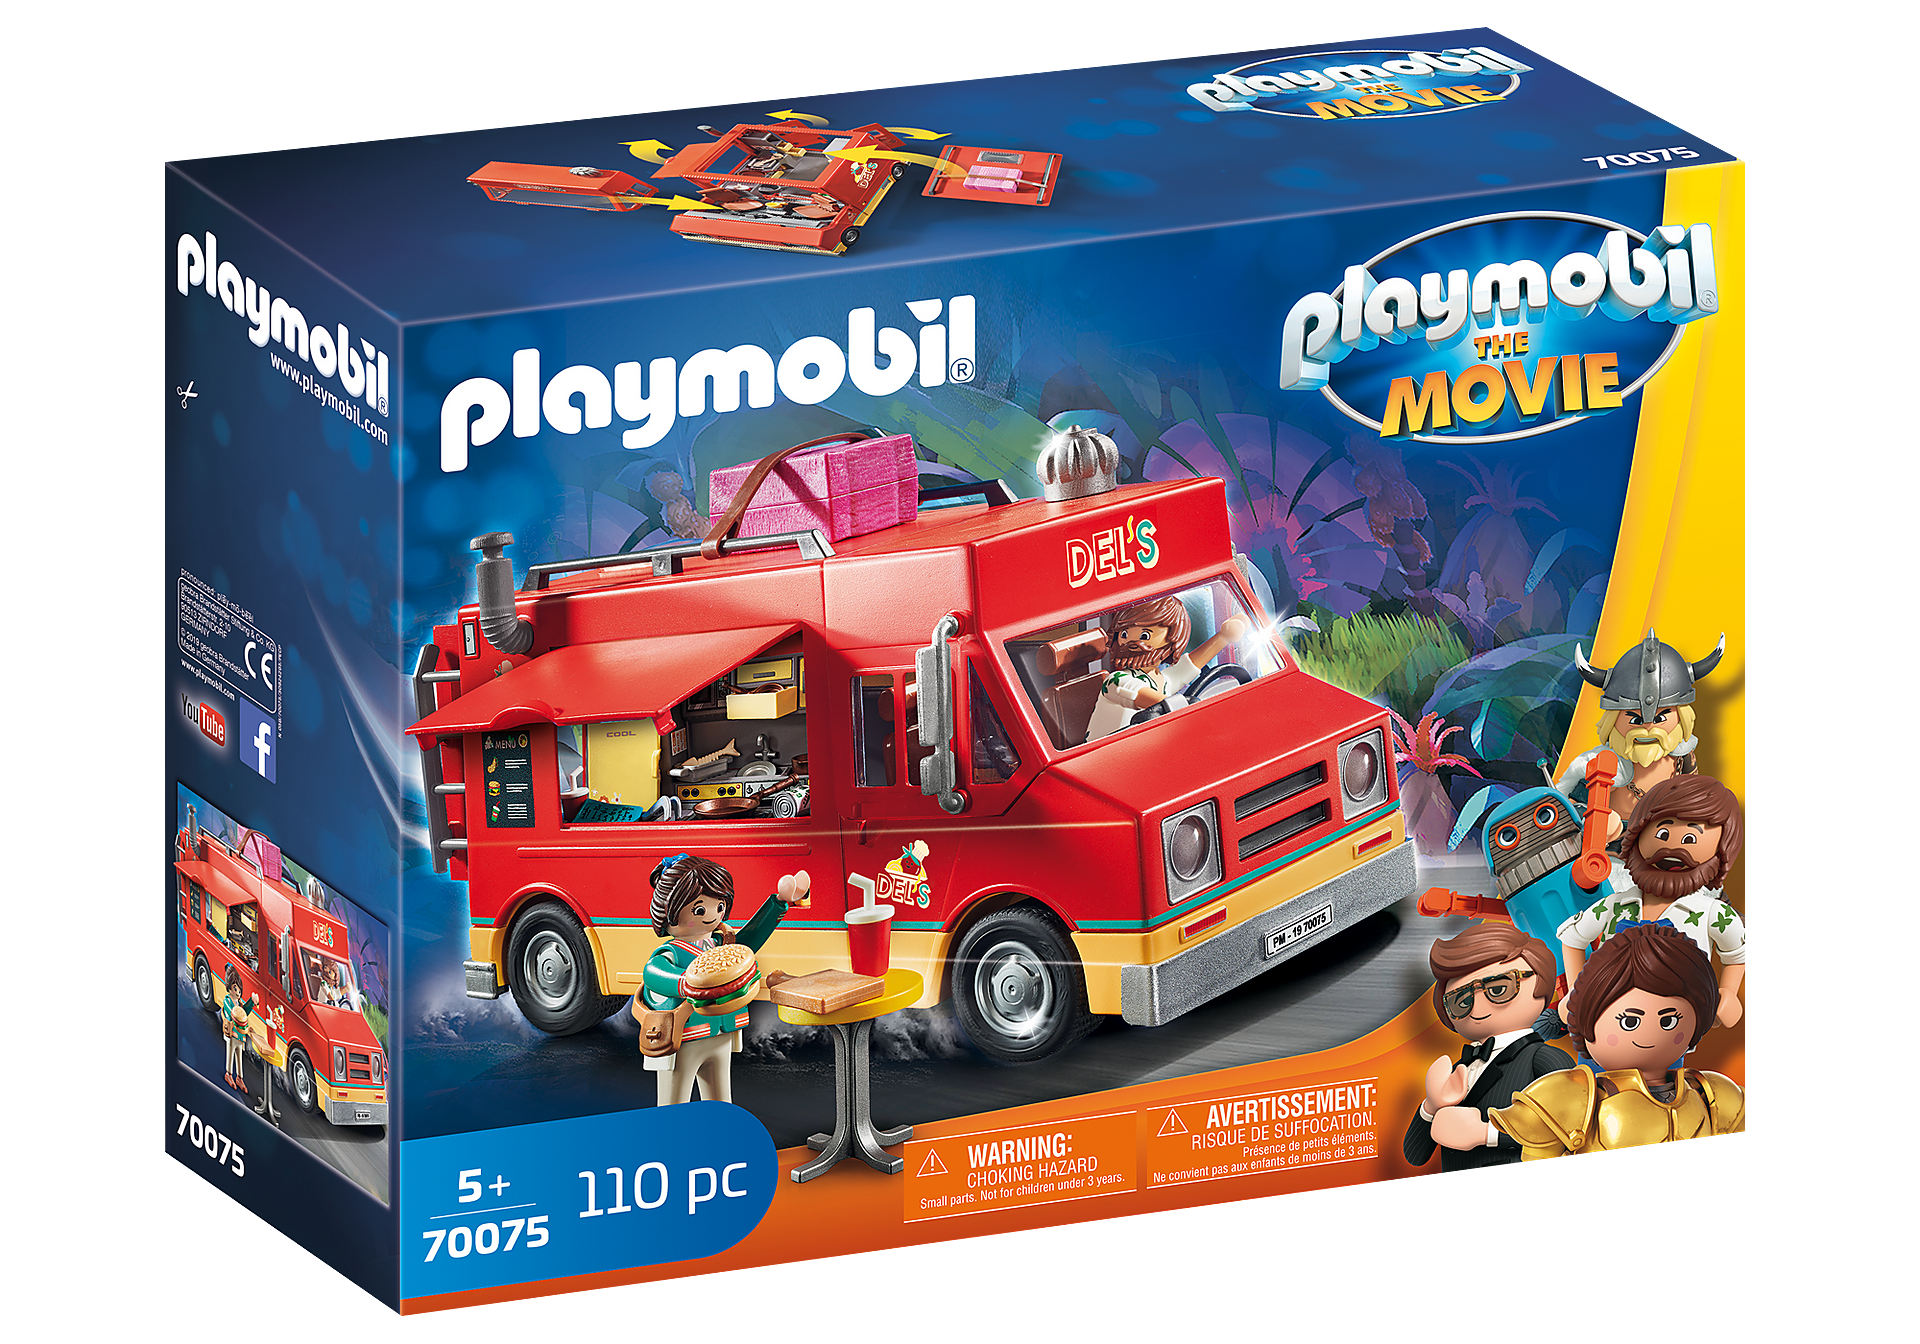 http://media.playmobil.com/i/playmobil/70075_product_box_front/PLAYMOBIL: THE MOVIE Del's Food truck